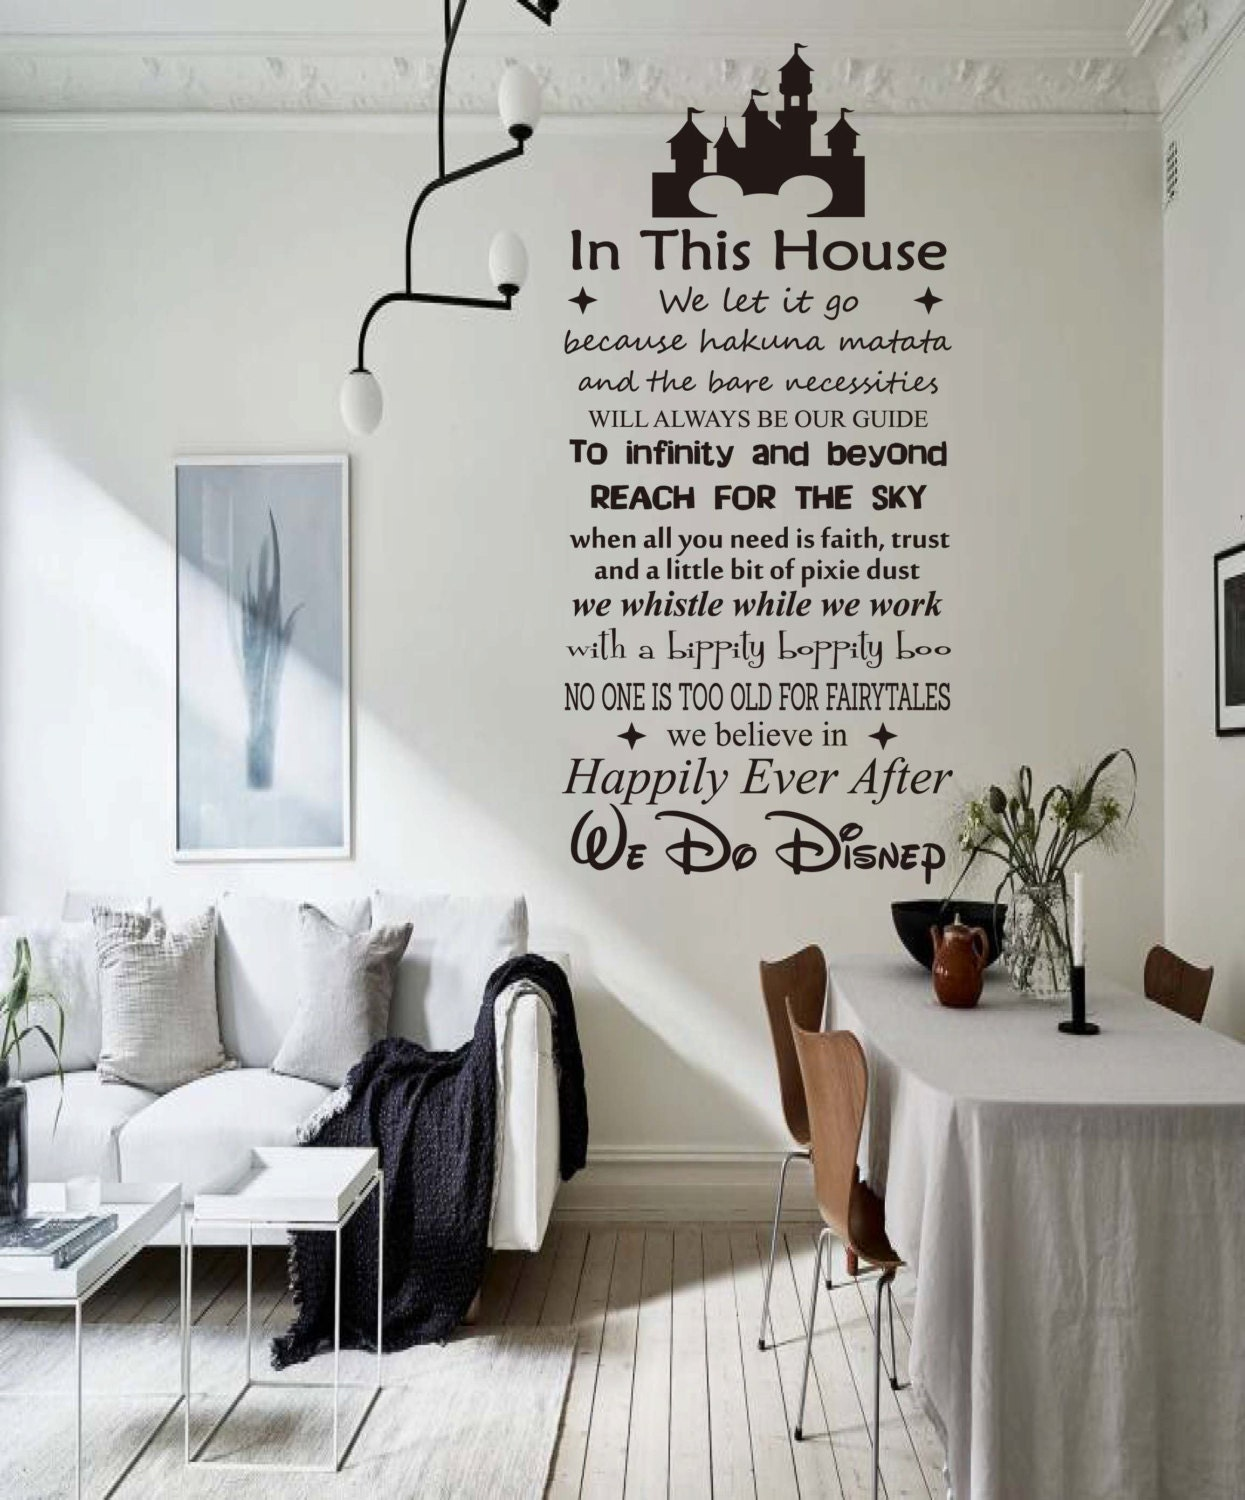 Details about IN THIS HOUSE WE DO DISNEY Vinyl Wall Decal Sticker Room  Decor Family Rules 48\